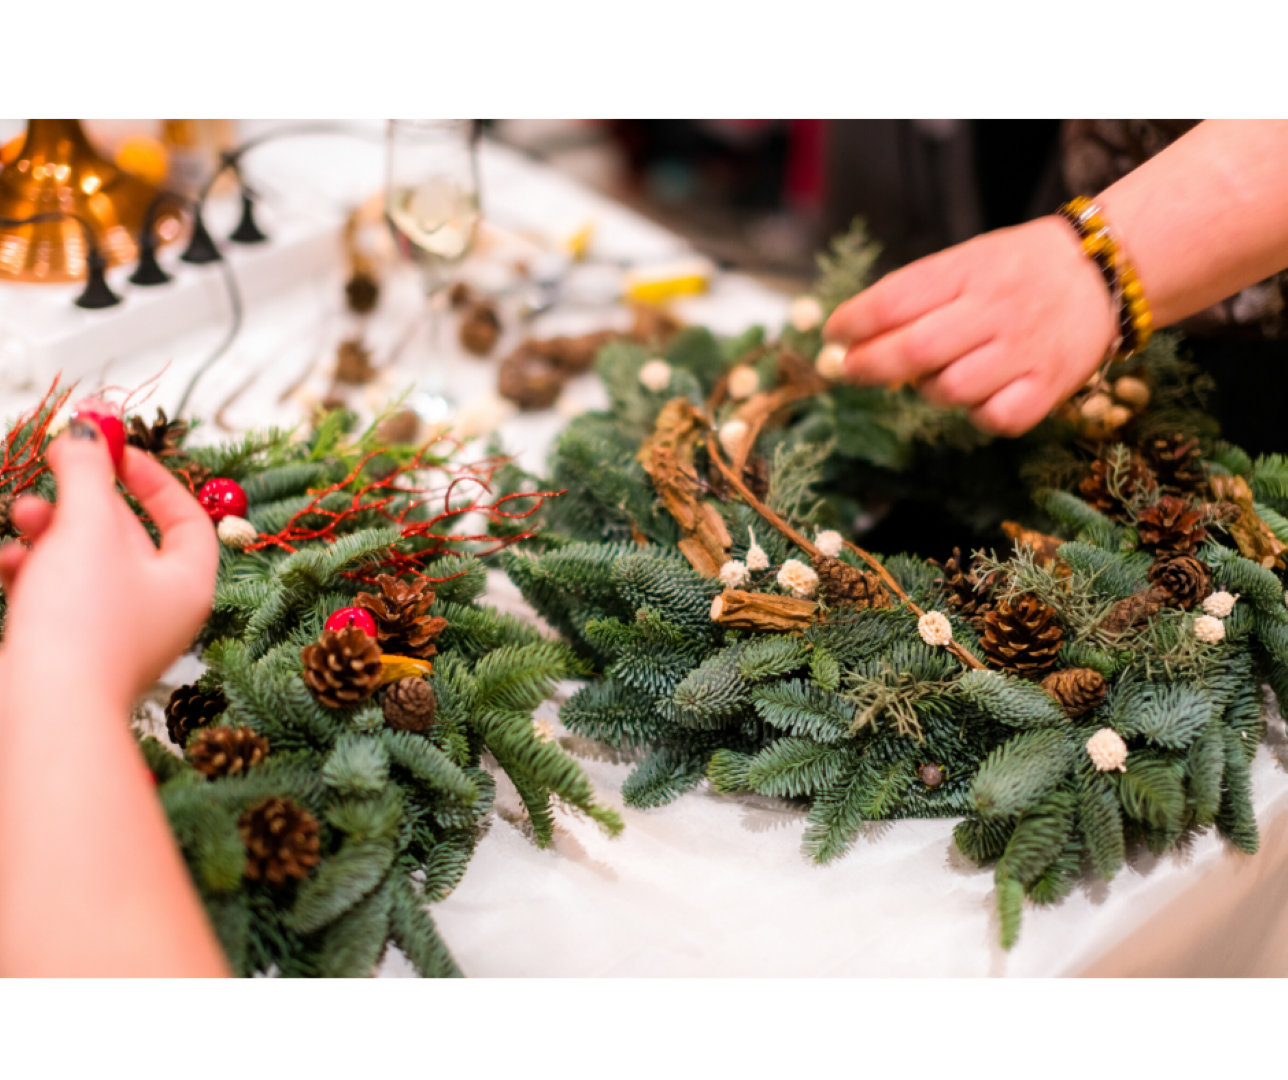 Wreath Making Workshops Events In Paignton The Palace Theatre Paignton